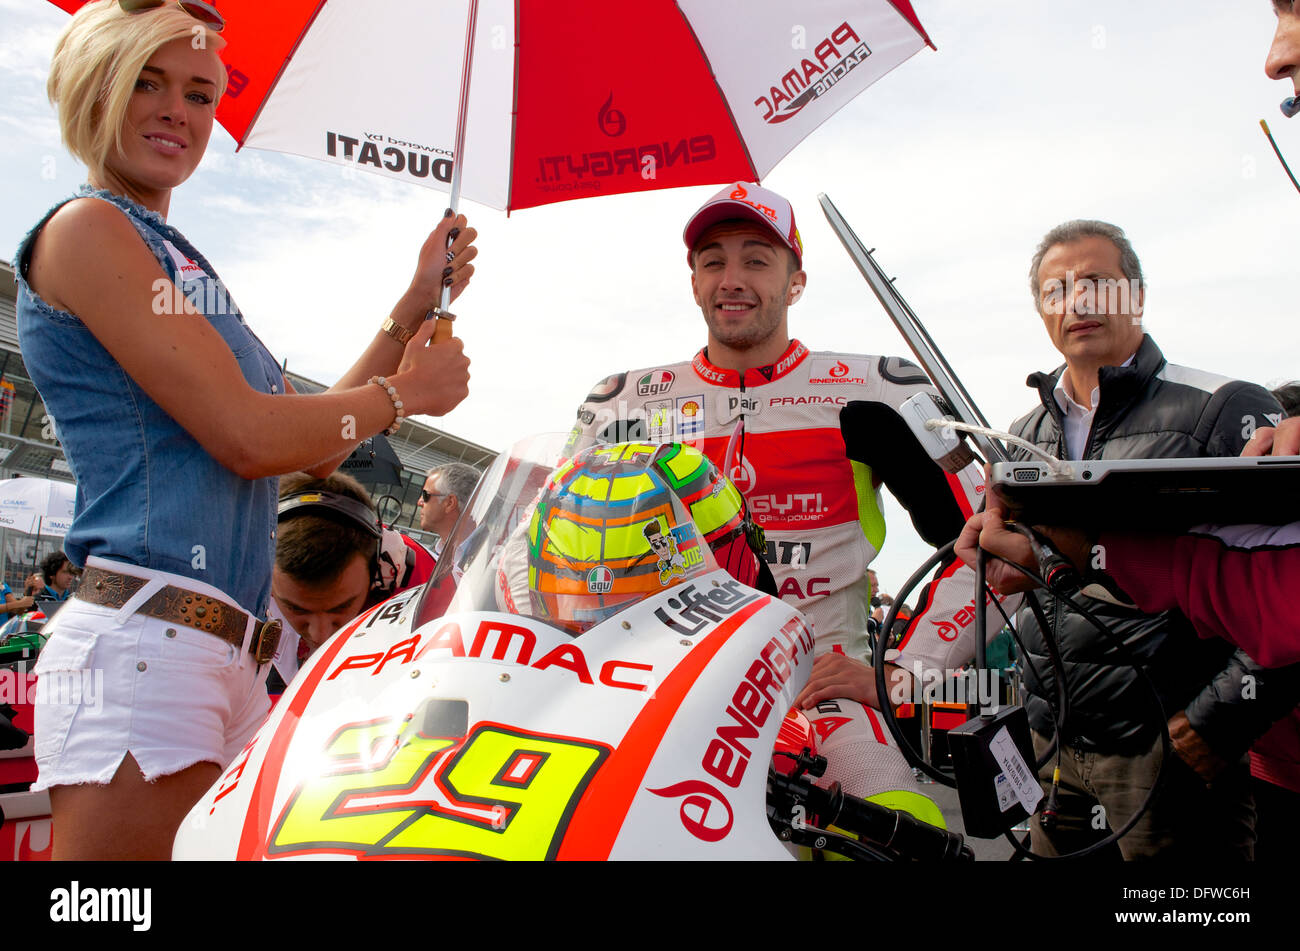 Andrea Iannone on his Ducati MotoGP bike with Energy T.I ...